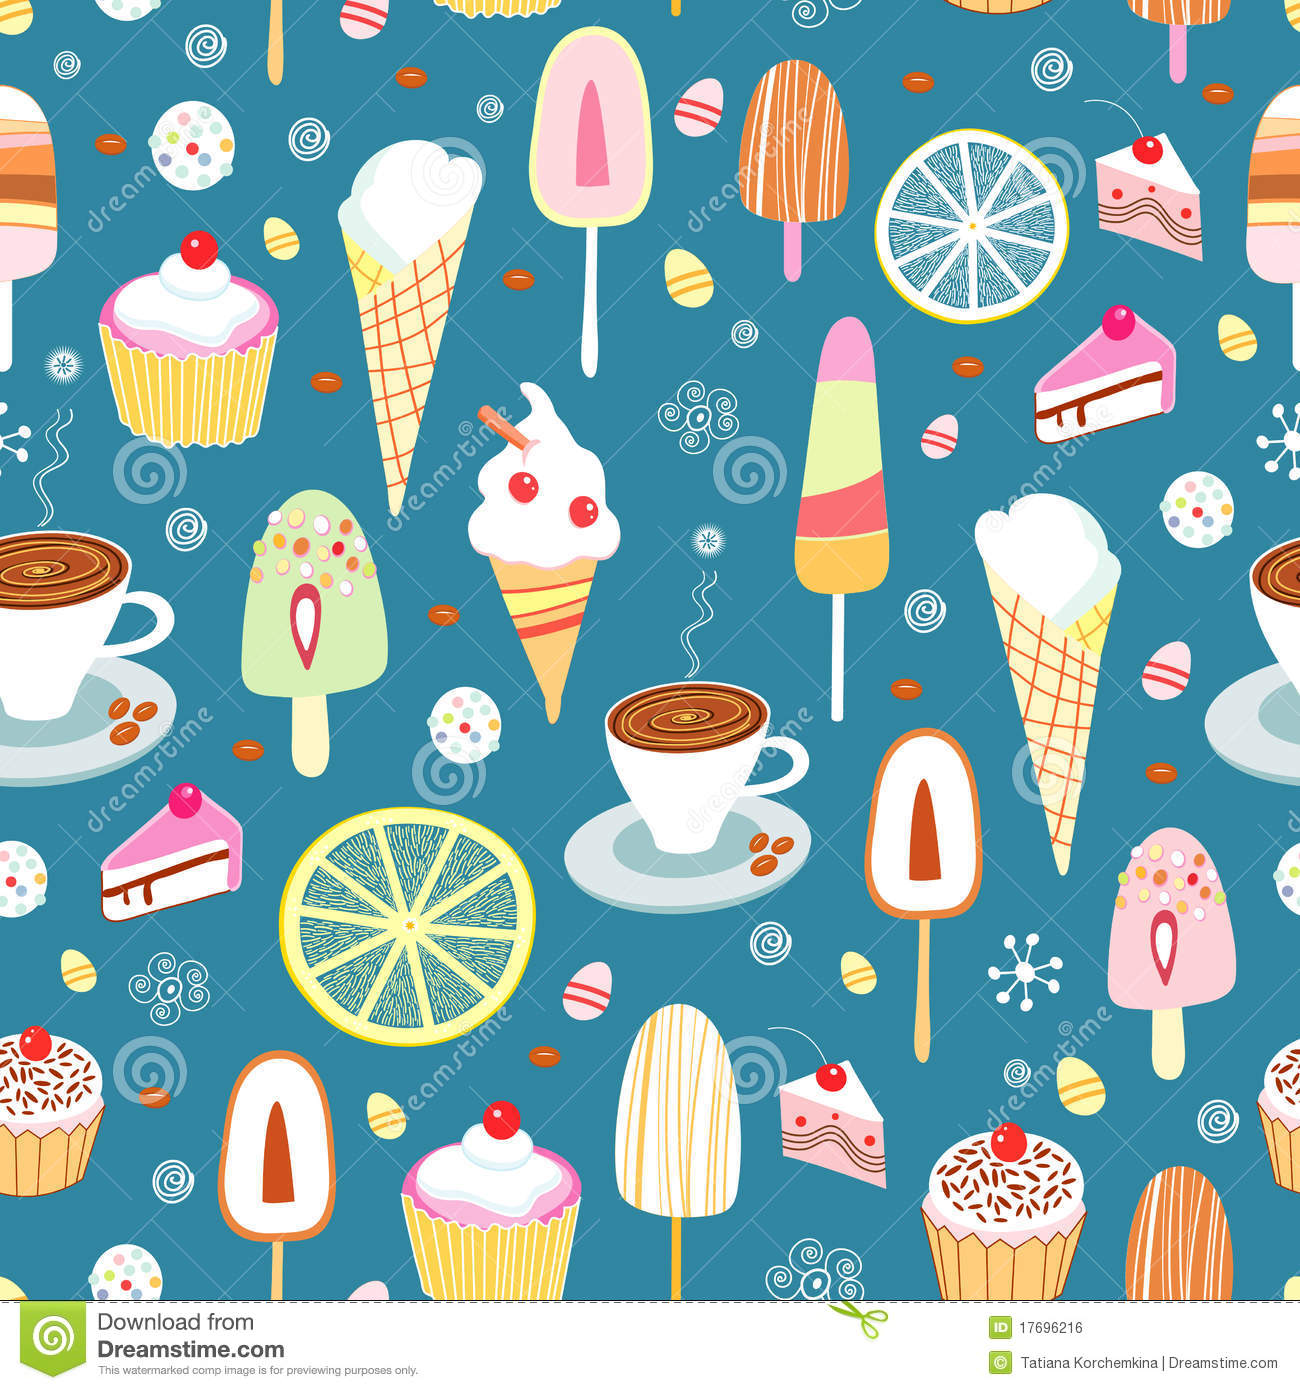 Seamless Ice Cream Background Vintage Style: Seamless Pattern Of Colorful Candy And Ice Cream Stock